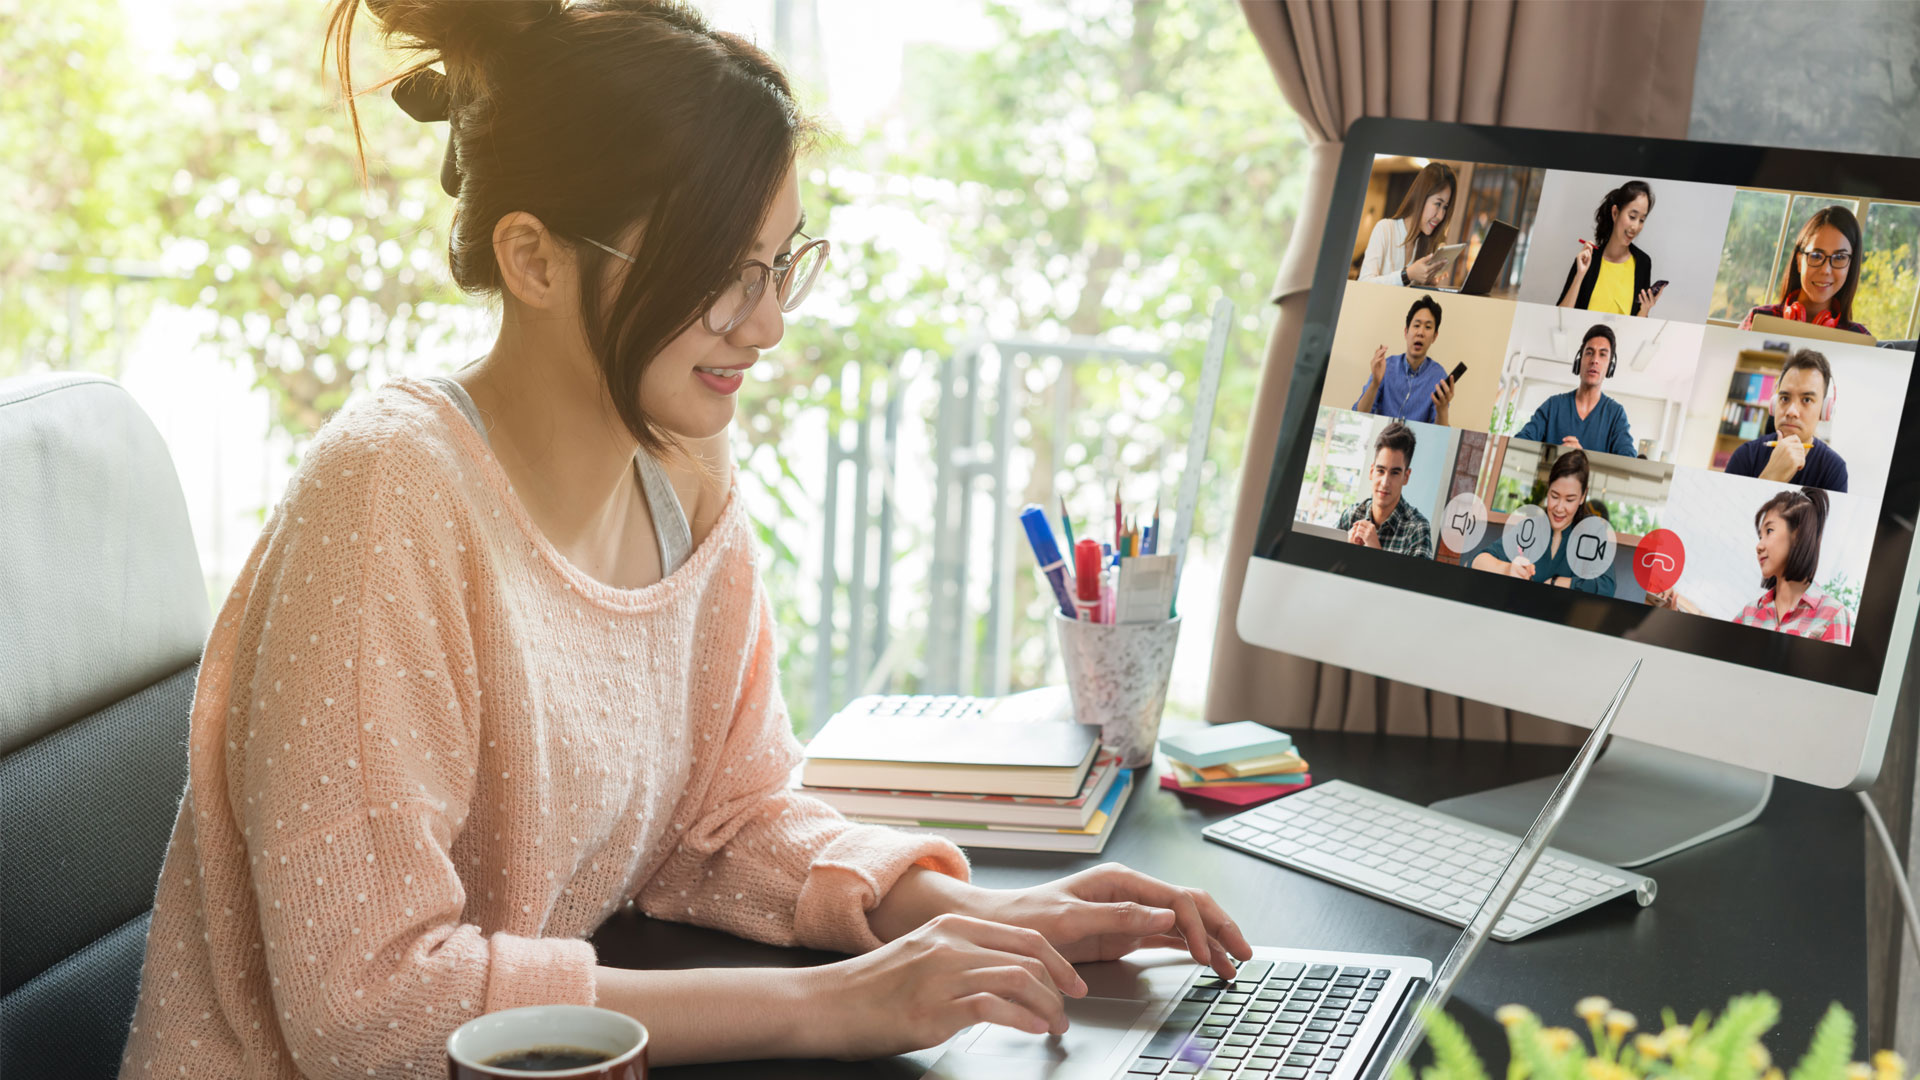 A female employee having a group video call on desktop simultaneously working on a laptop